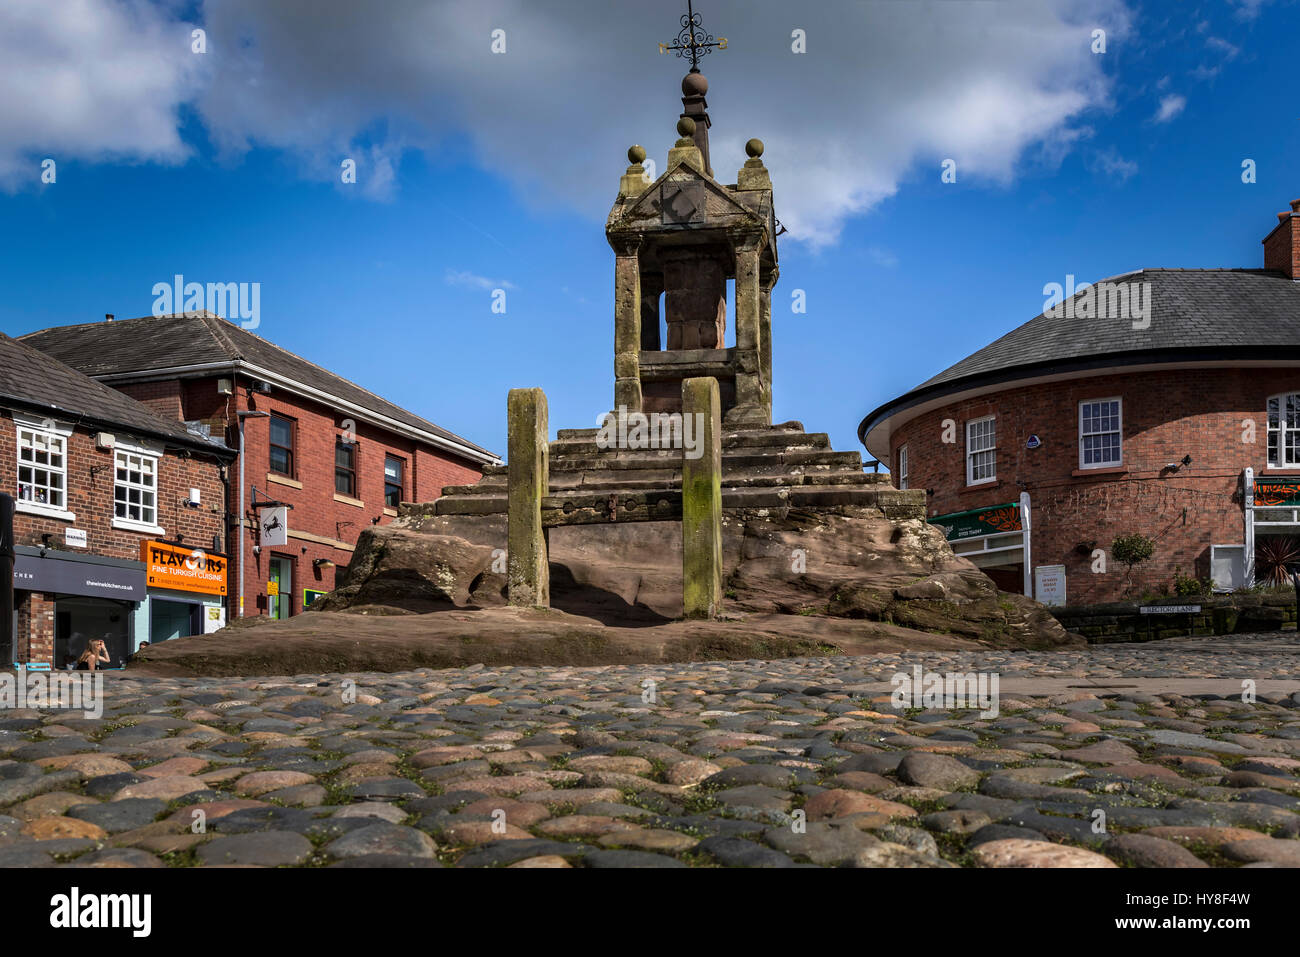 Lymm cross and cobbles.Pillory - Stock Image